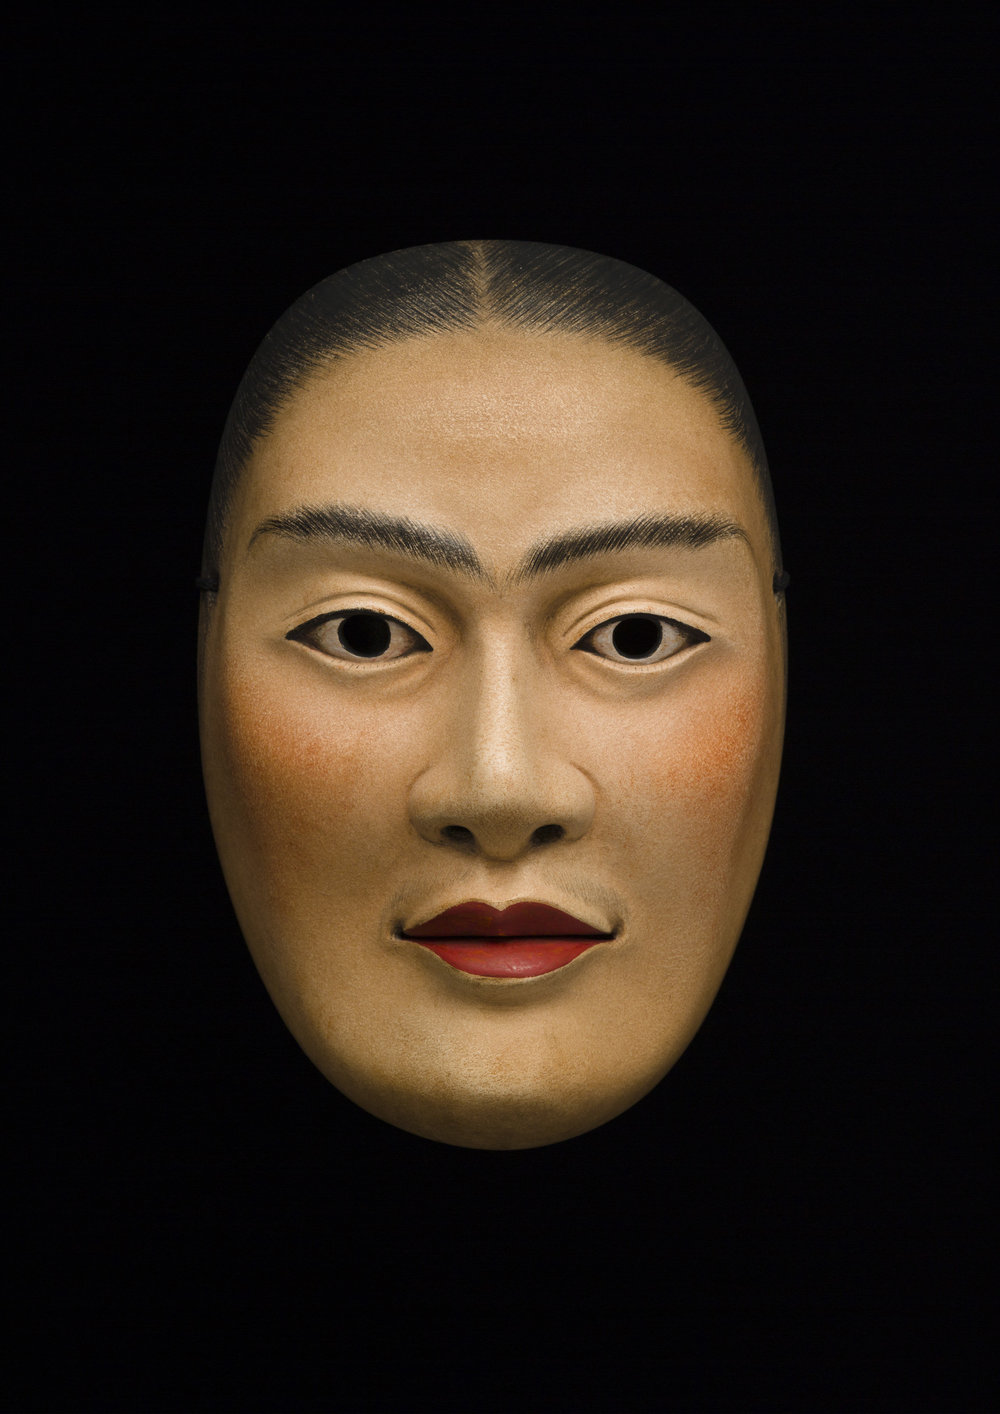 The Frida Kahlo Mask